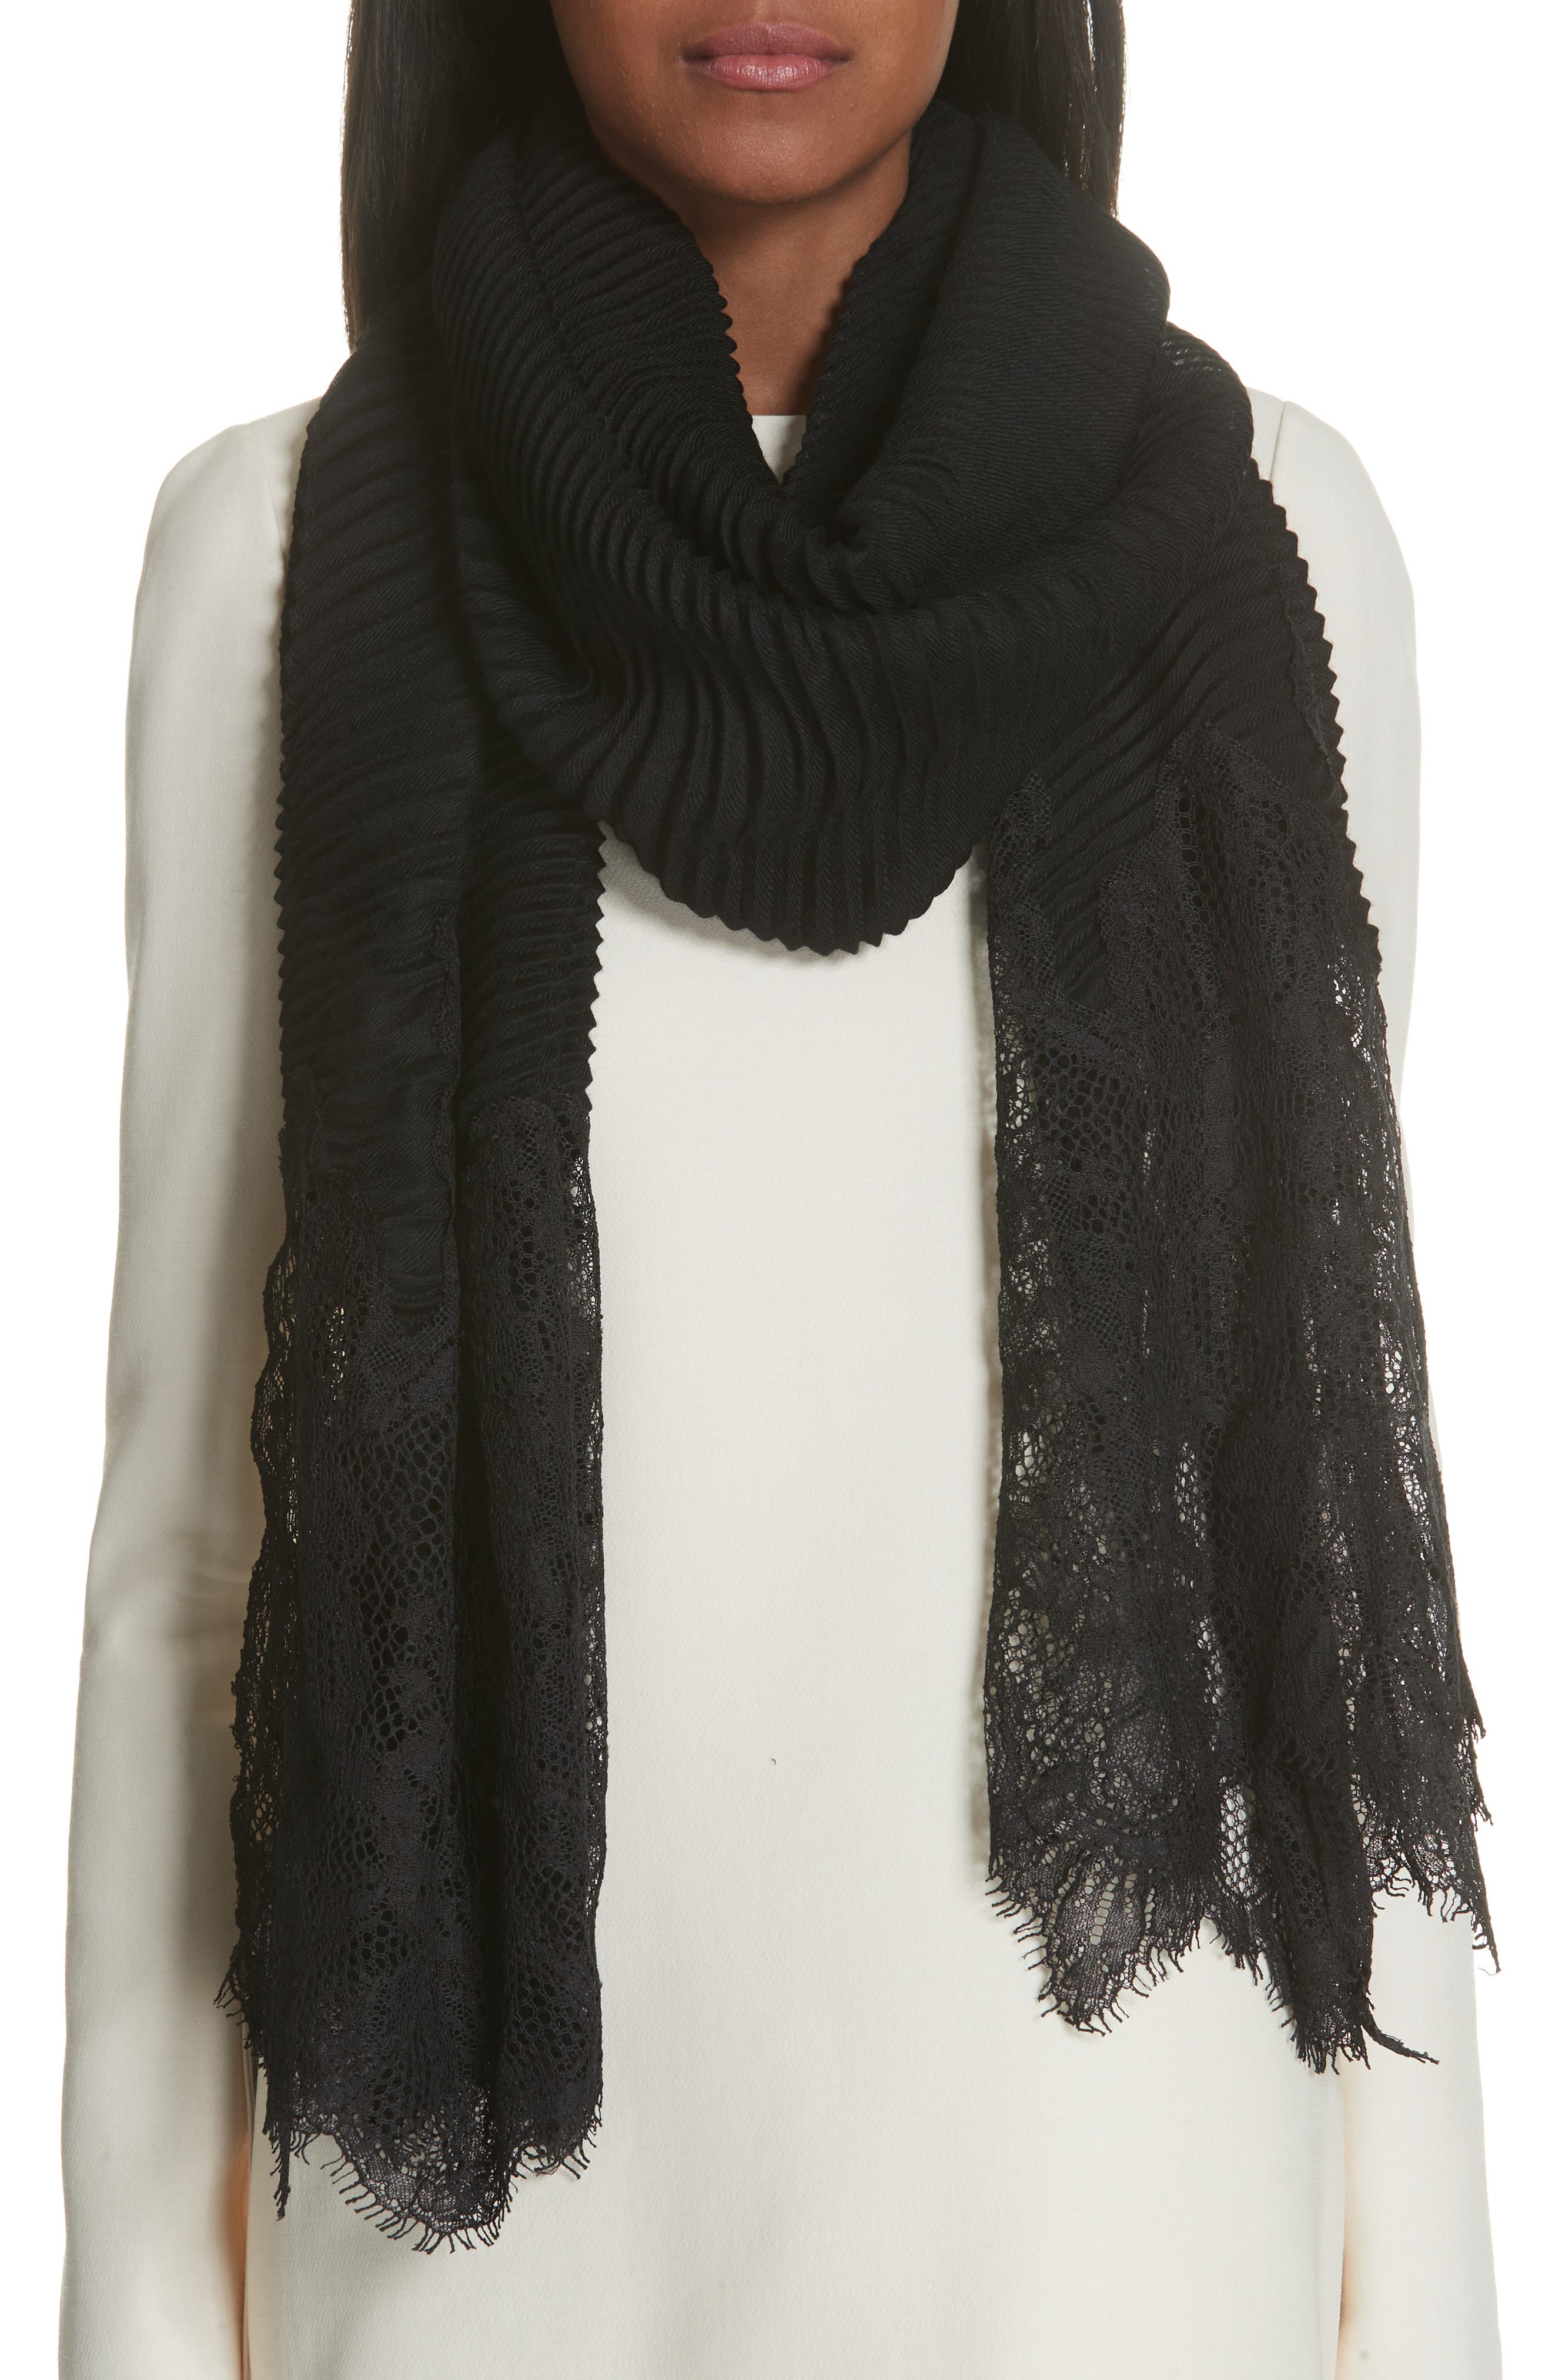 VALENTINO,                             Plissé Lace Trim Scarf,                             Alternate thumbnail 2, color,                             BLACK